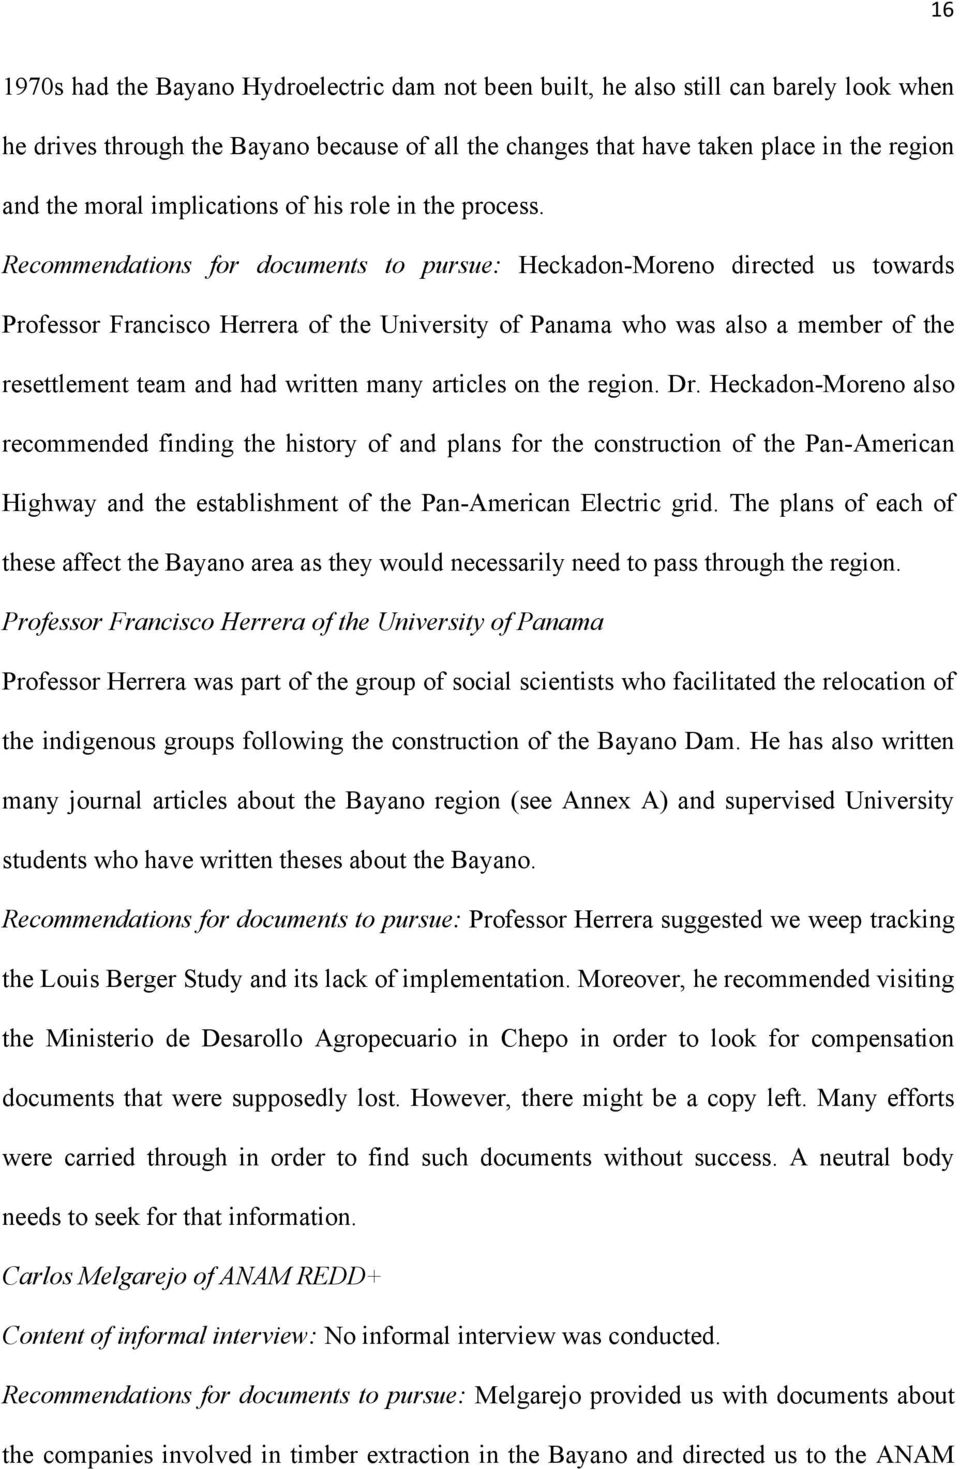 Recommendations for documents to pursue: Heckadon-Moreno directed us towards Professor Francisco Herrera of the University of Panama who was also a member of the resettlement team and had written